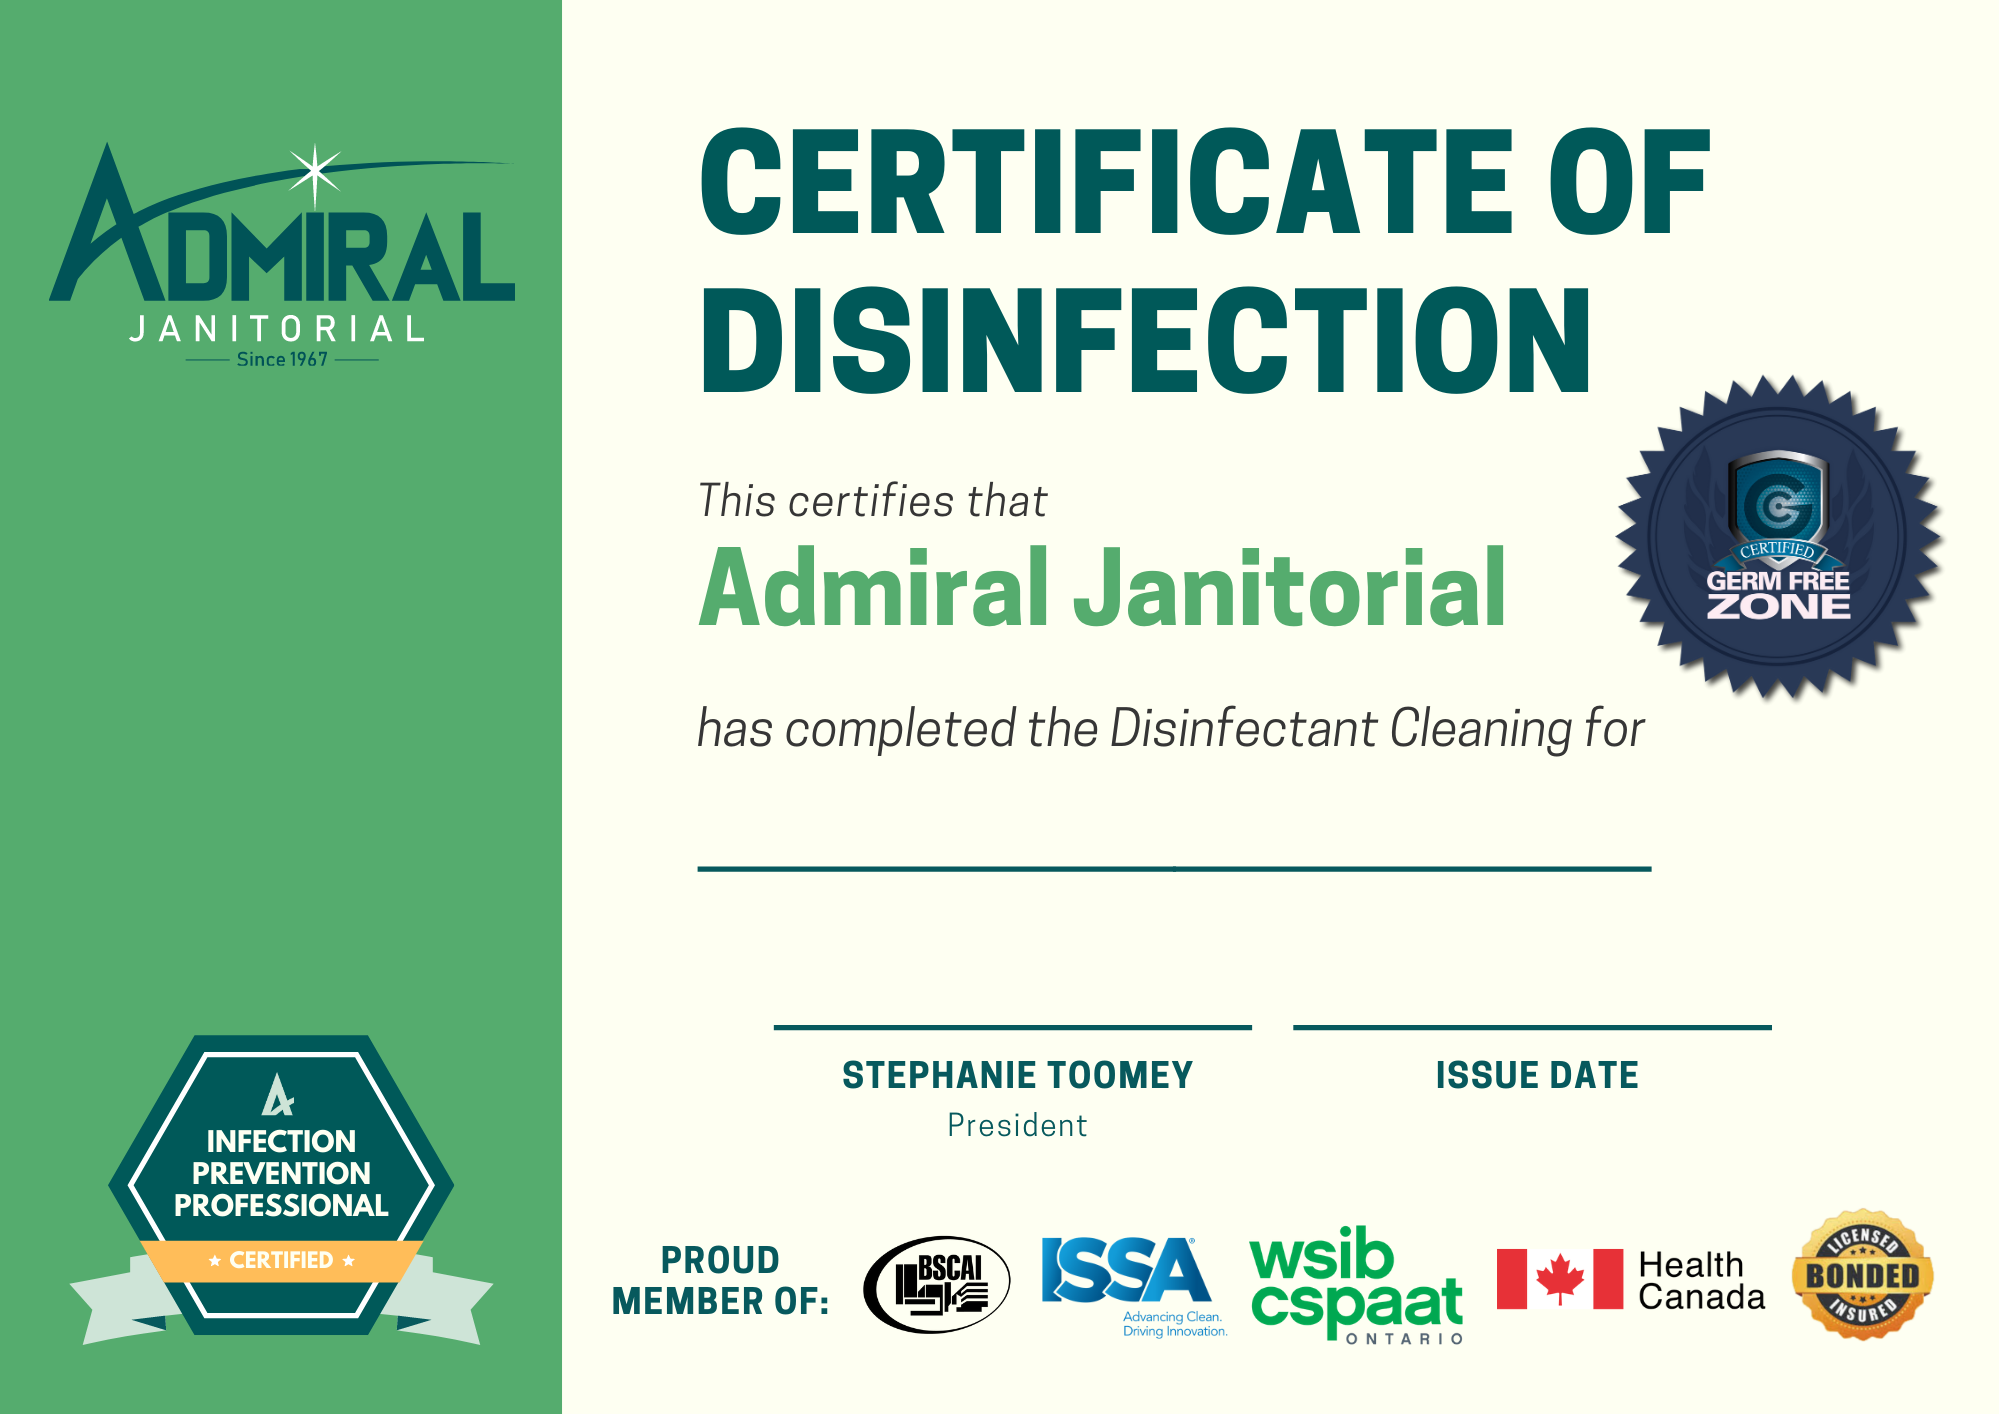 Admiral Janitorial Certificate of Disinfection